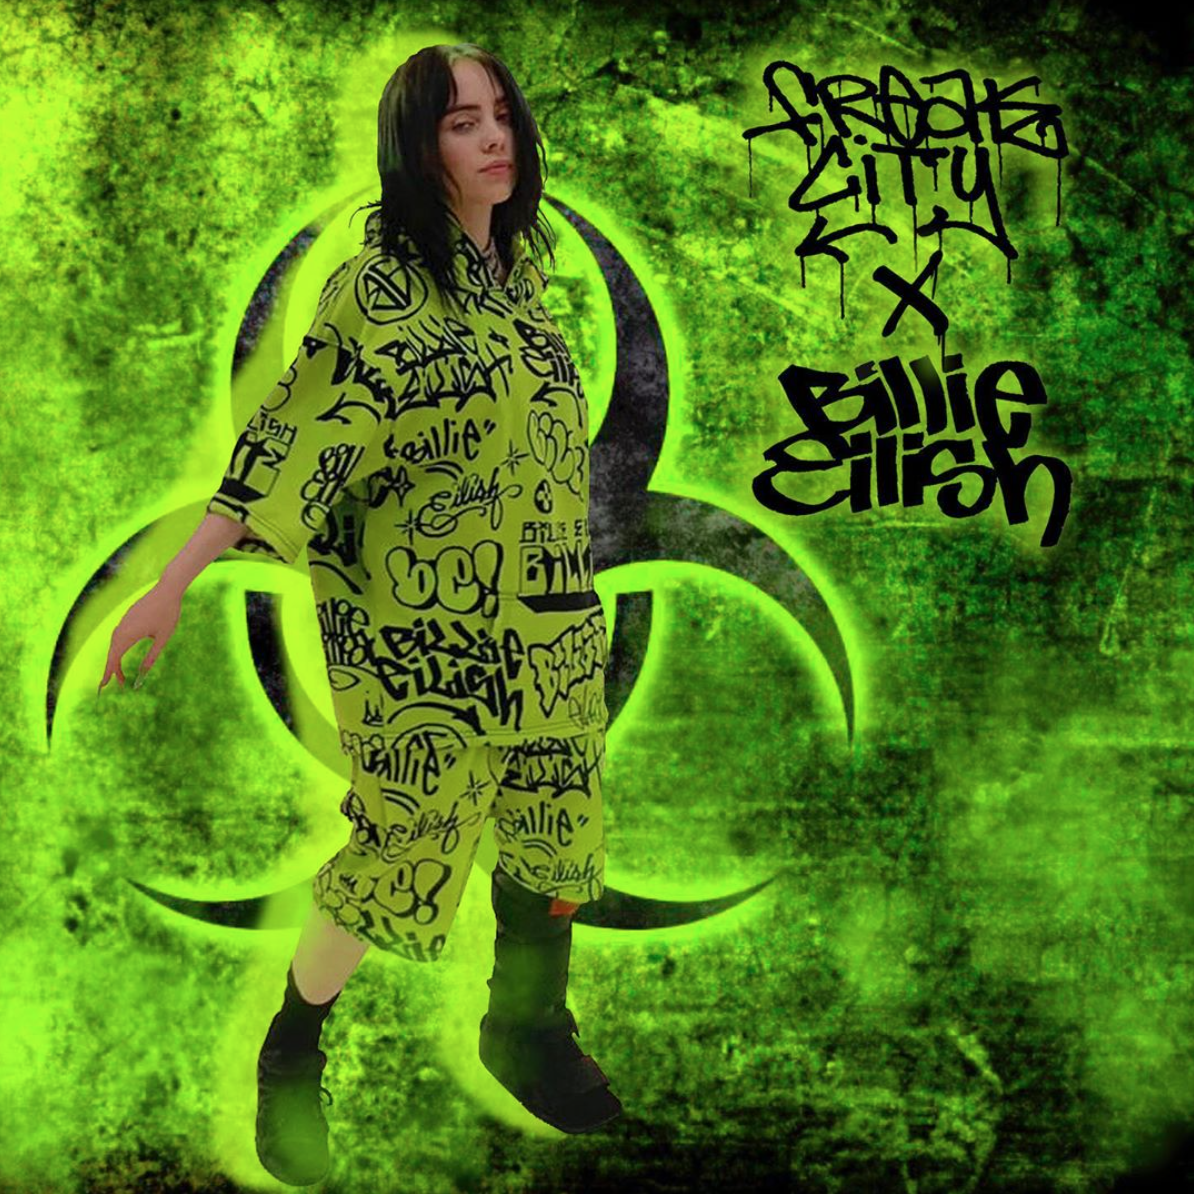 Freak City X Billie Eilish Green Graffiti Shorts Sold Separately Freak City